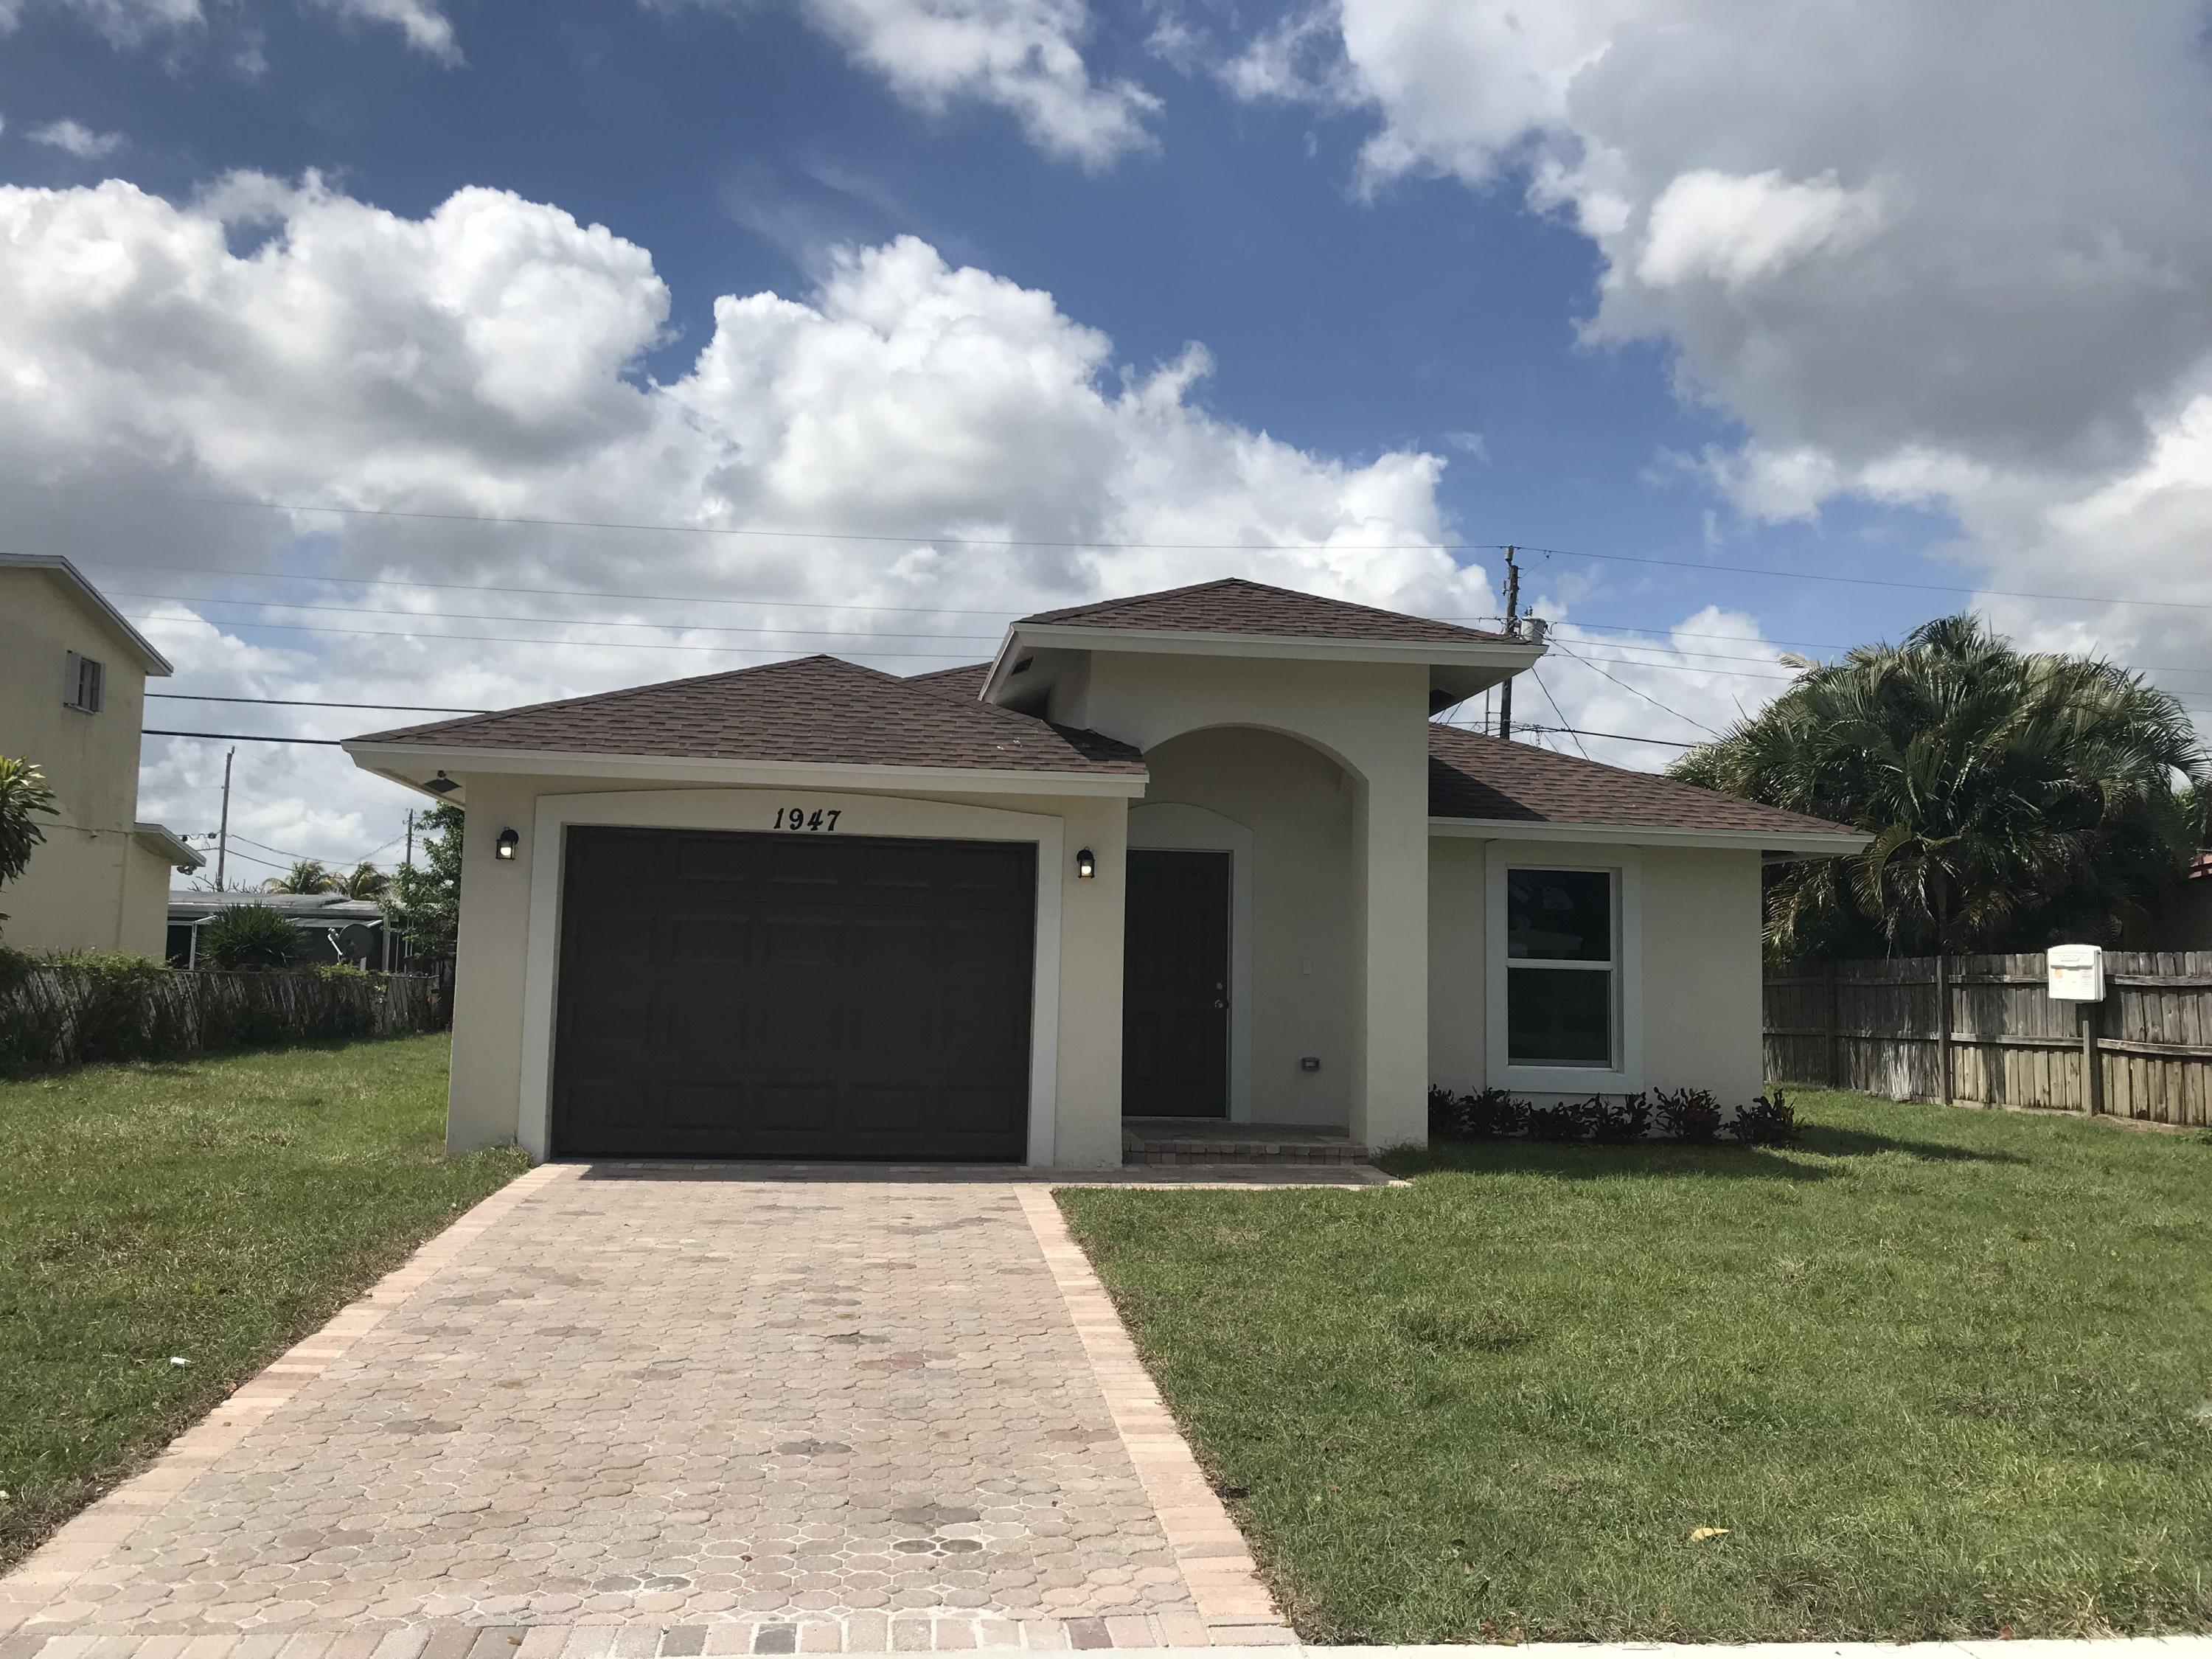 Home for sale in FOREST HILL VILLAGE NO 4 IN West Palm Beach Florida